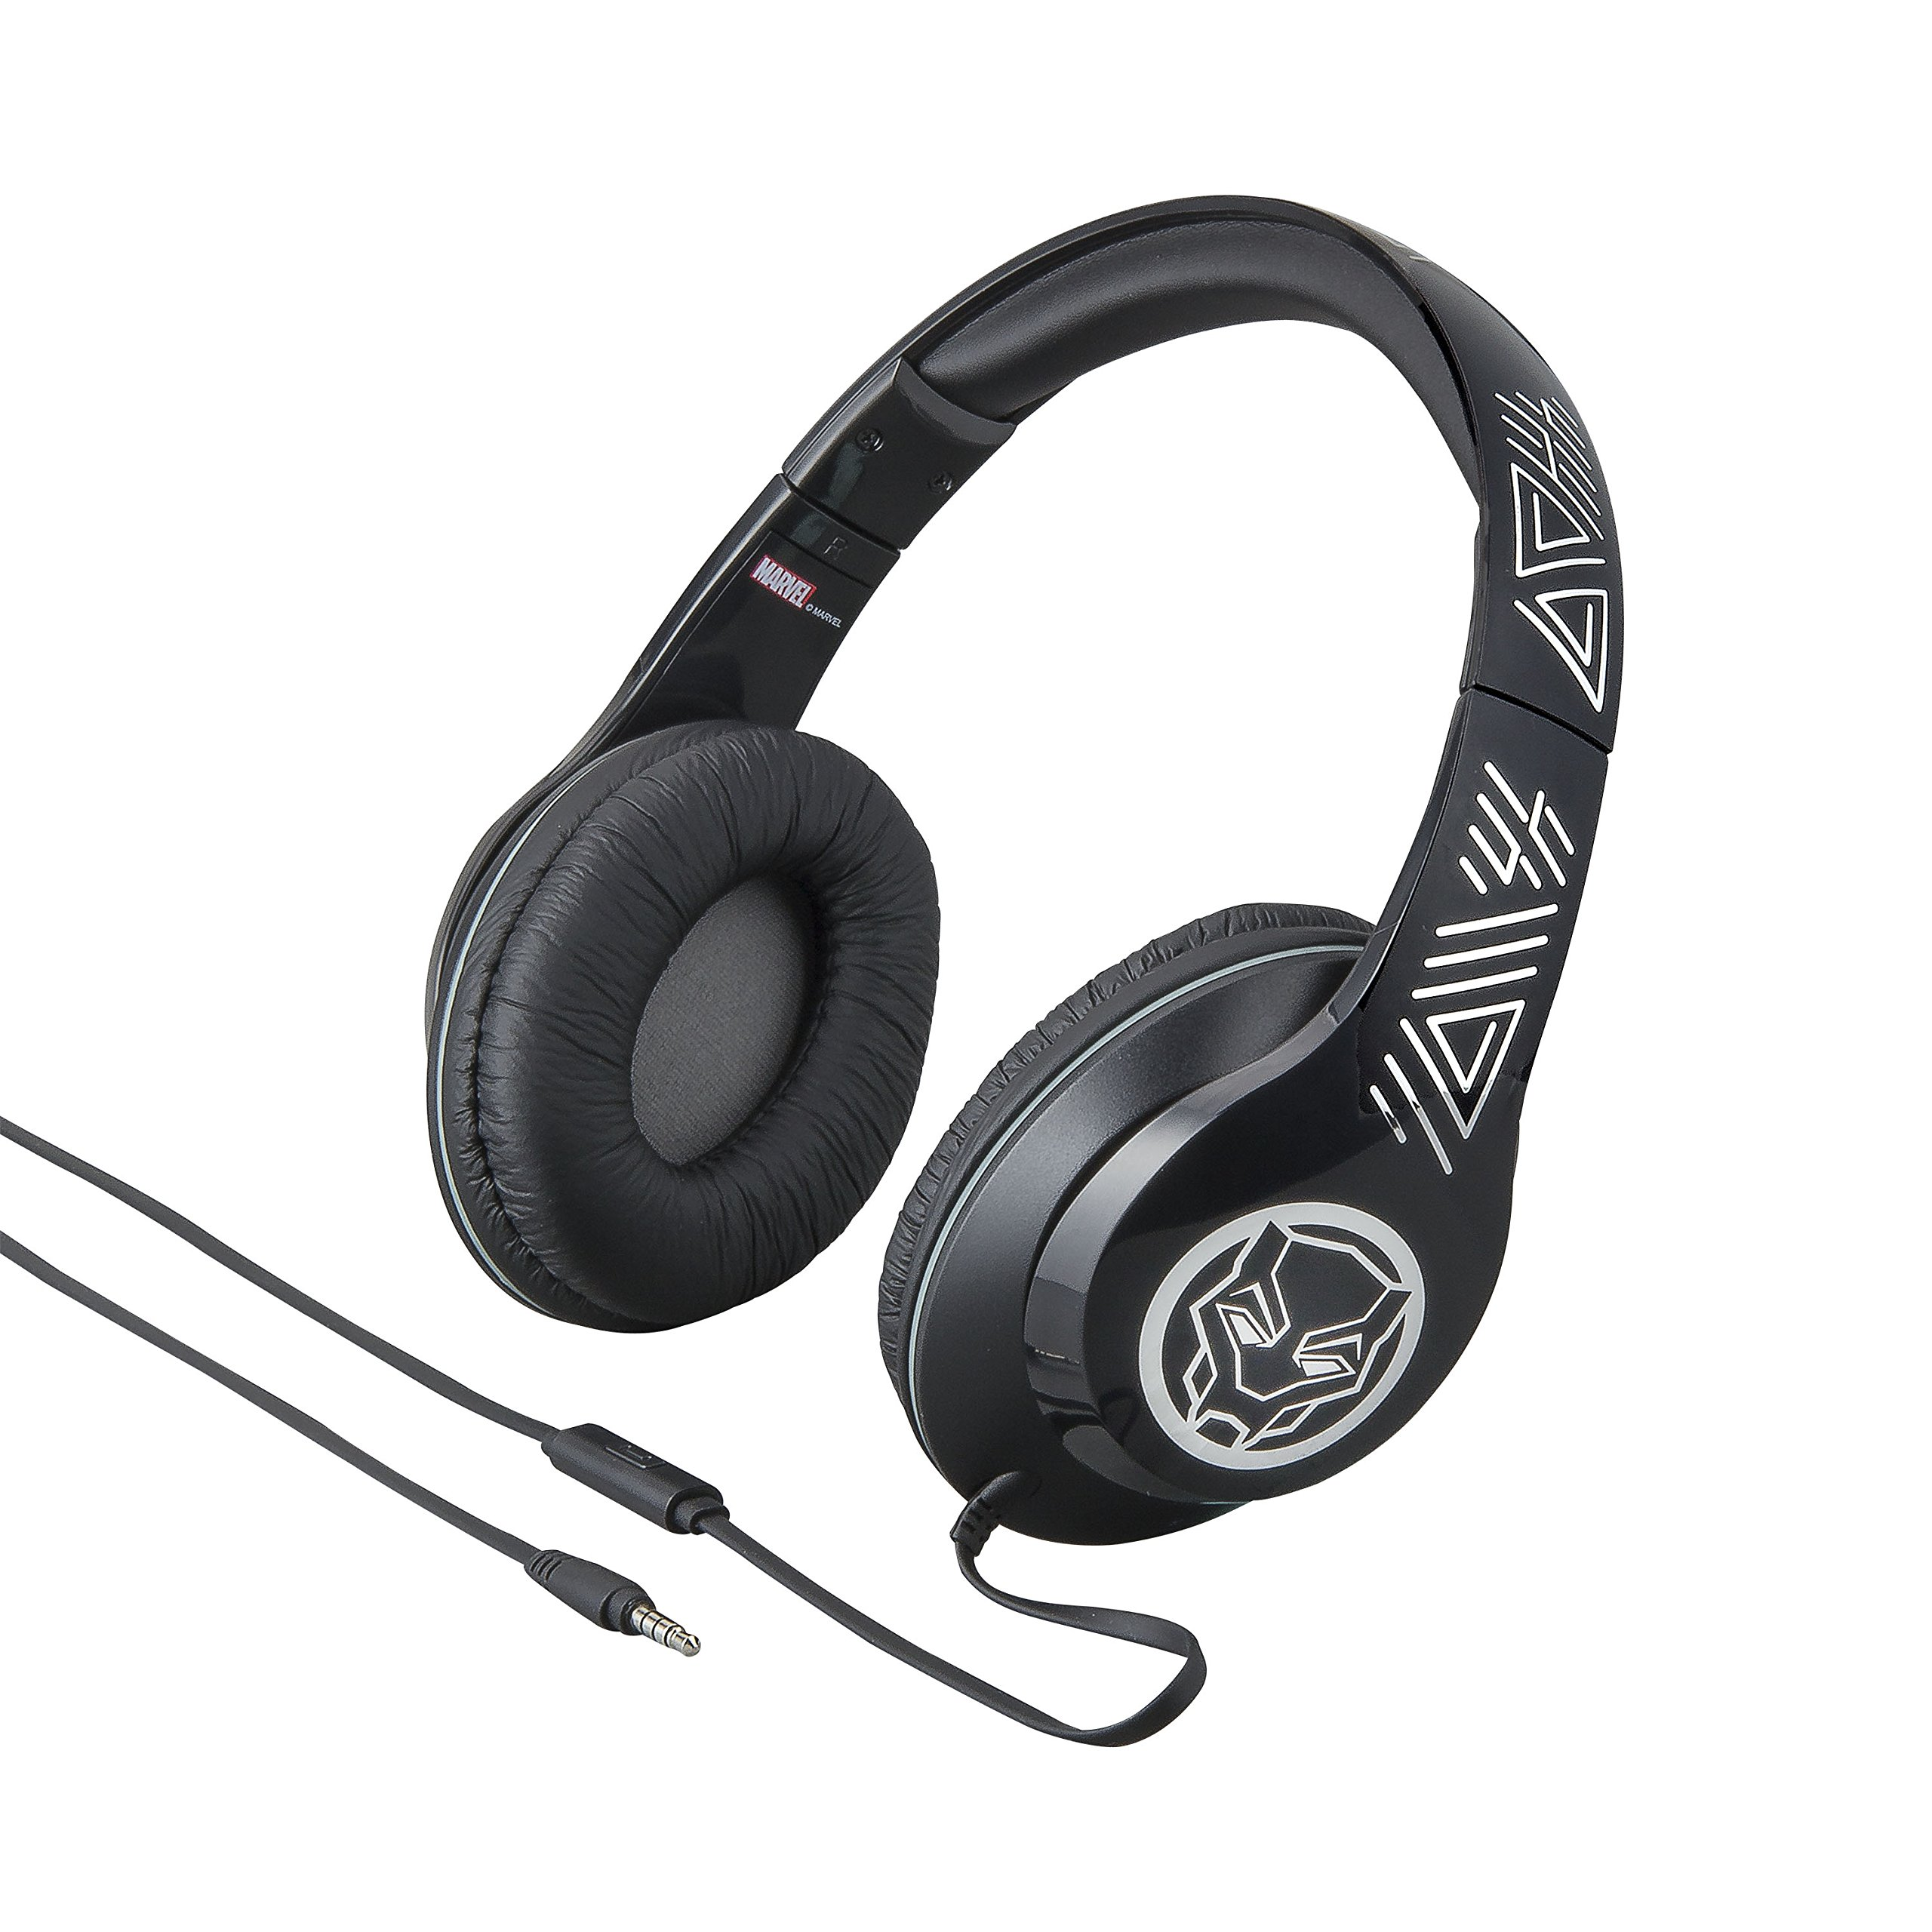 Black Panther Over the Ear Headphones with Built in Microphone Quality Sound From The Makers of iHome